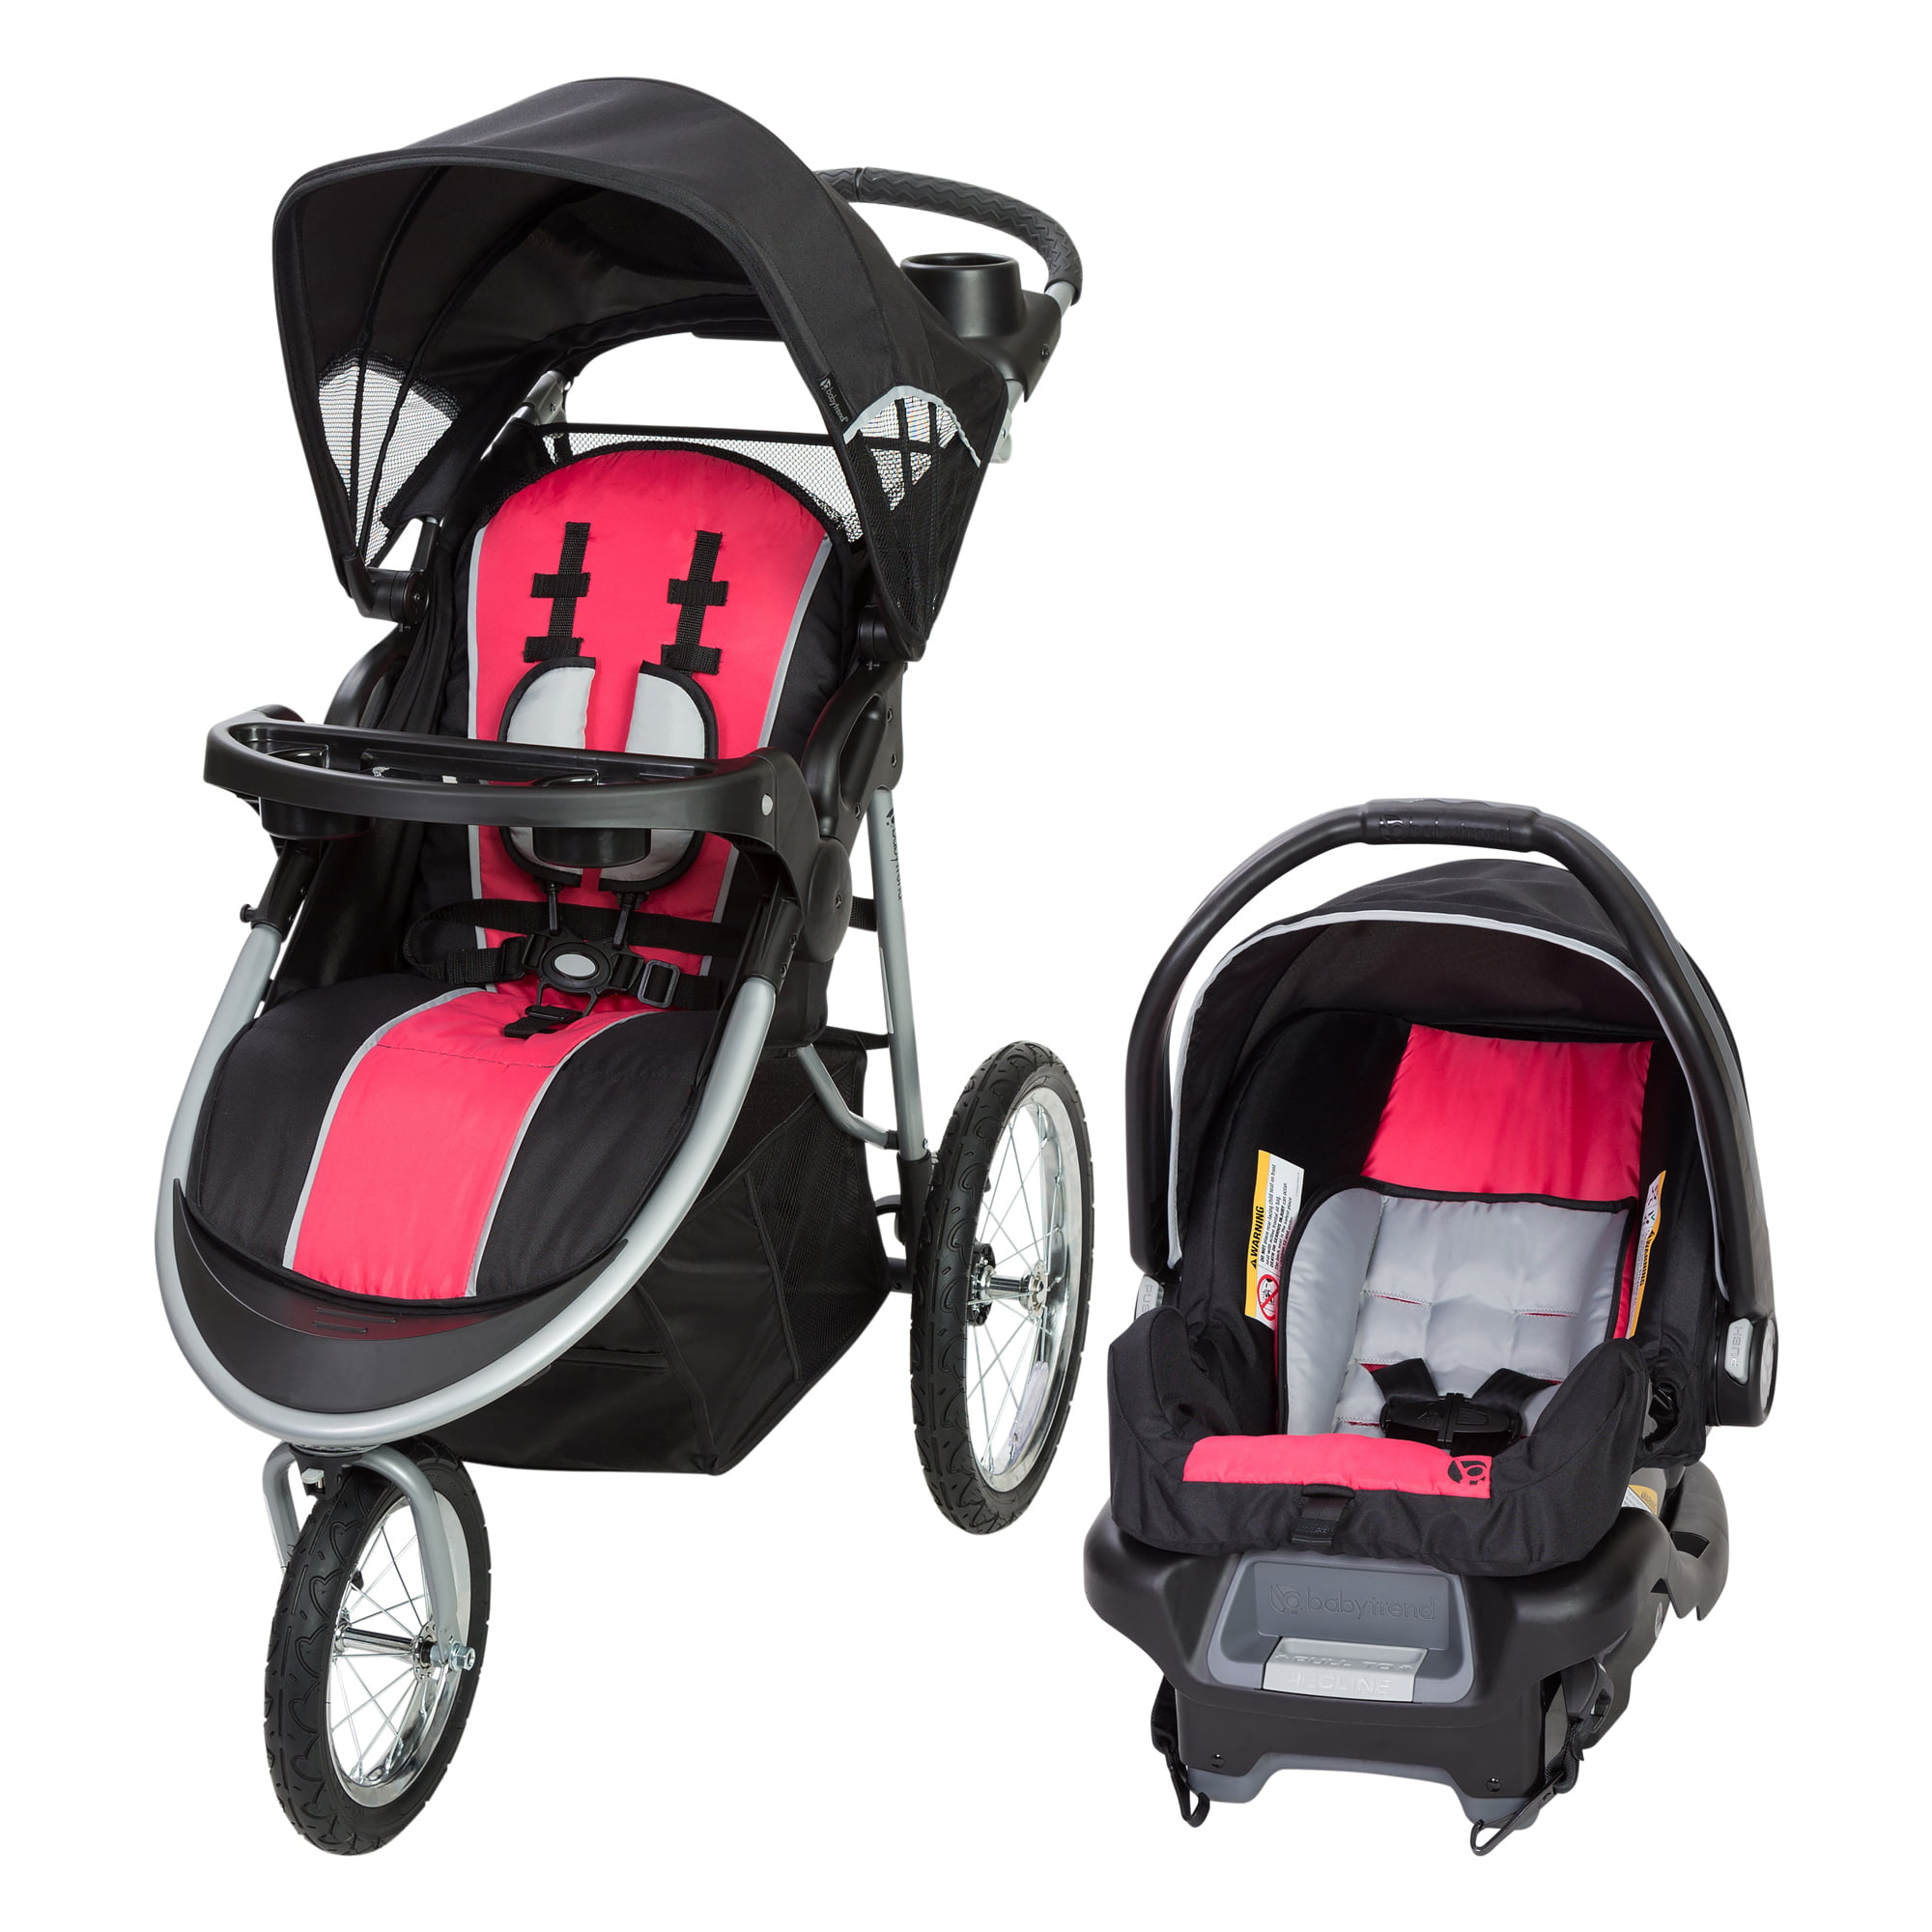 Baby Trend Pathway 35 Jogger Travel System-Optic Pink by Baby Trend